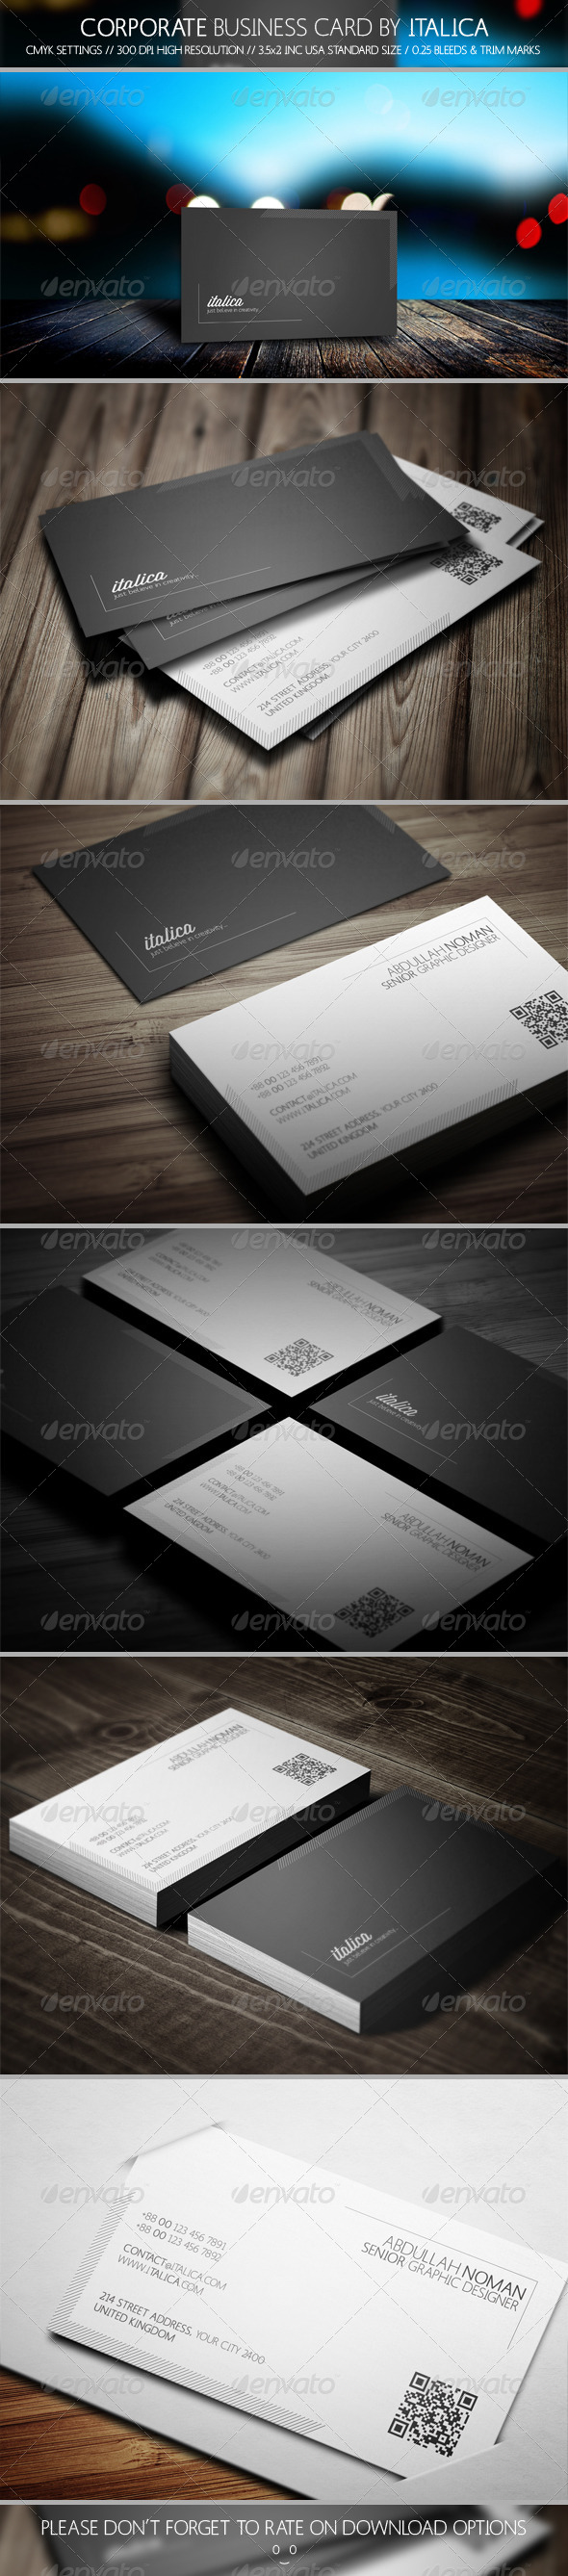 GraphicRiver Creative Business Card Design by Italica 5760075